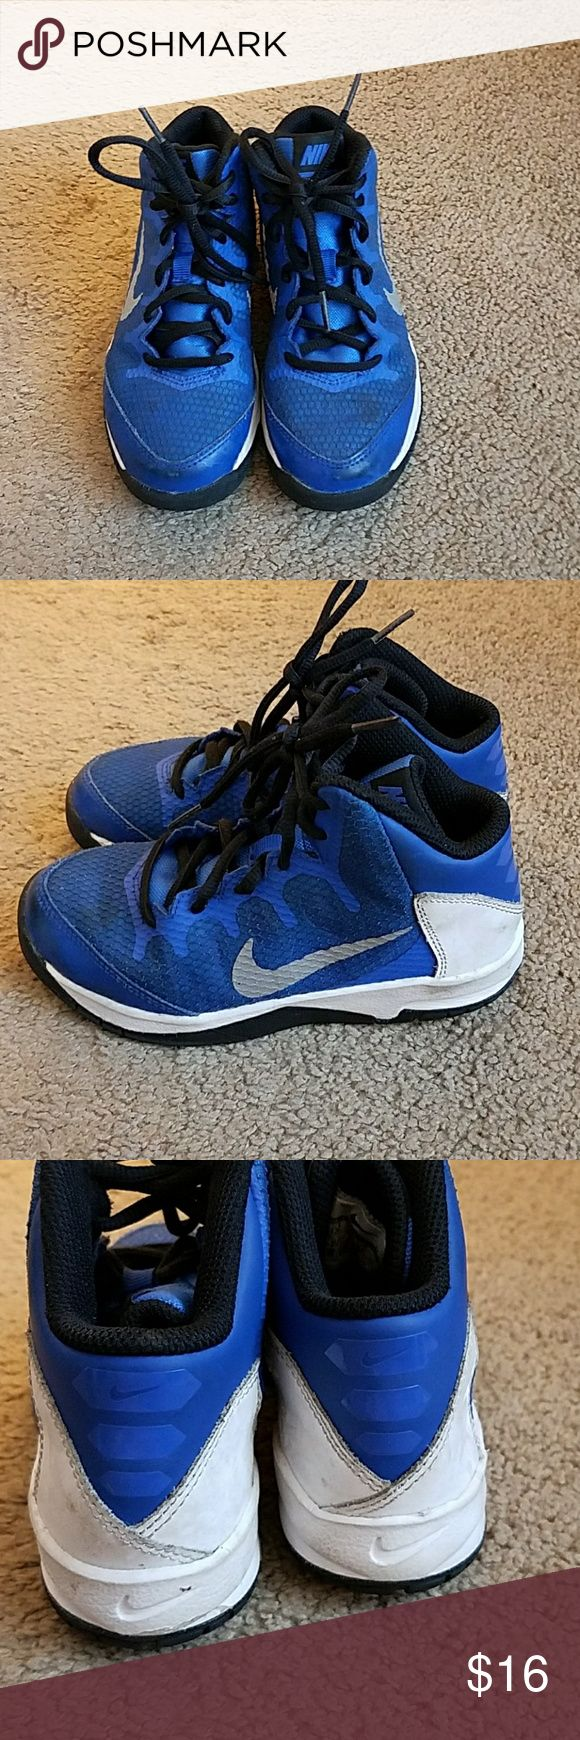 Nike Boys Basketball Shoes Size 13 Nike Boys Basketball Shoes Size 13 Blue, Black, and White with Silver Swoosh Great condition overall but the pictures are showing they are dirty, have not tried to clean. No holes, snags, or tears. Nike Shoes Sneakers